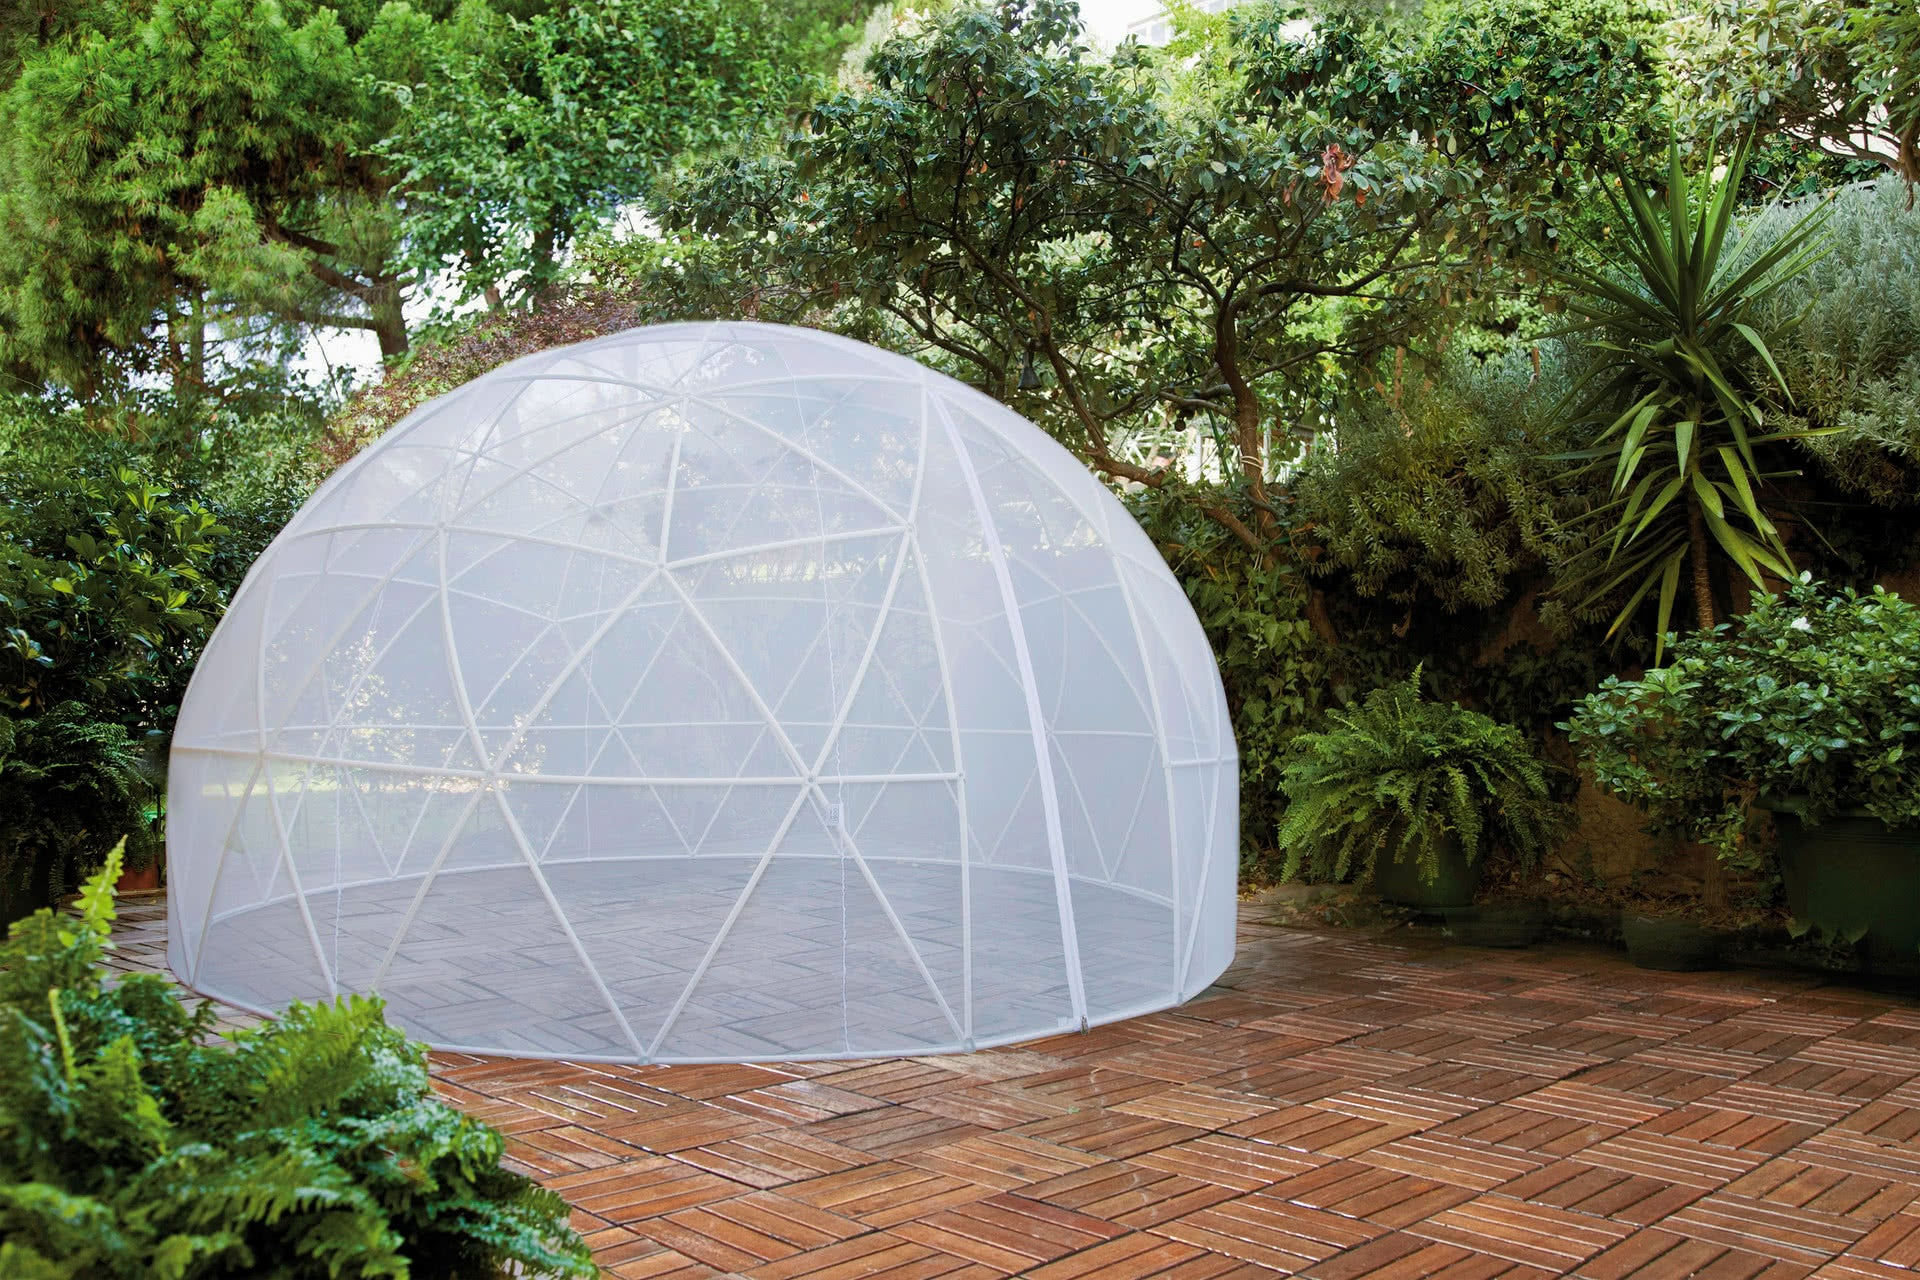 Garden Igloo 360 gardenigloo usa | garden igloo usa